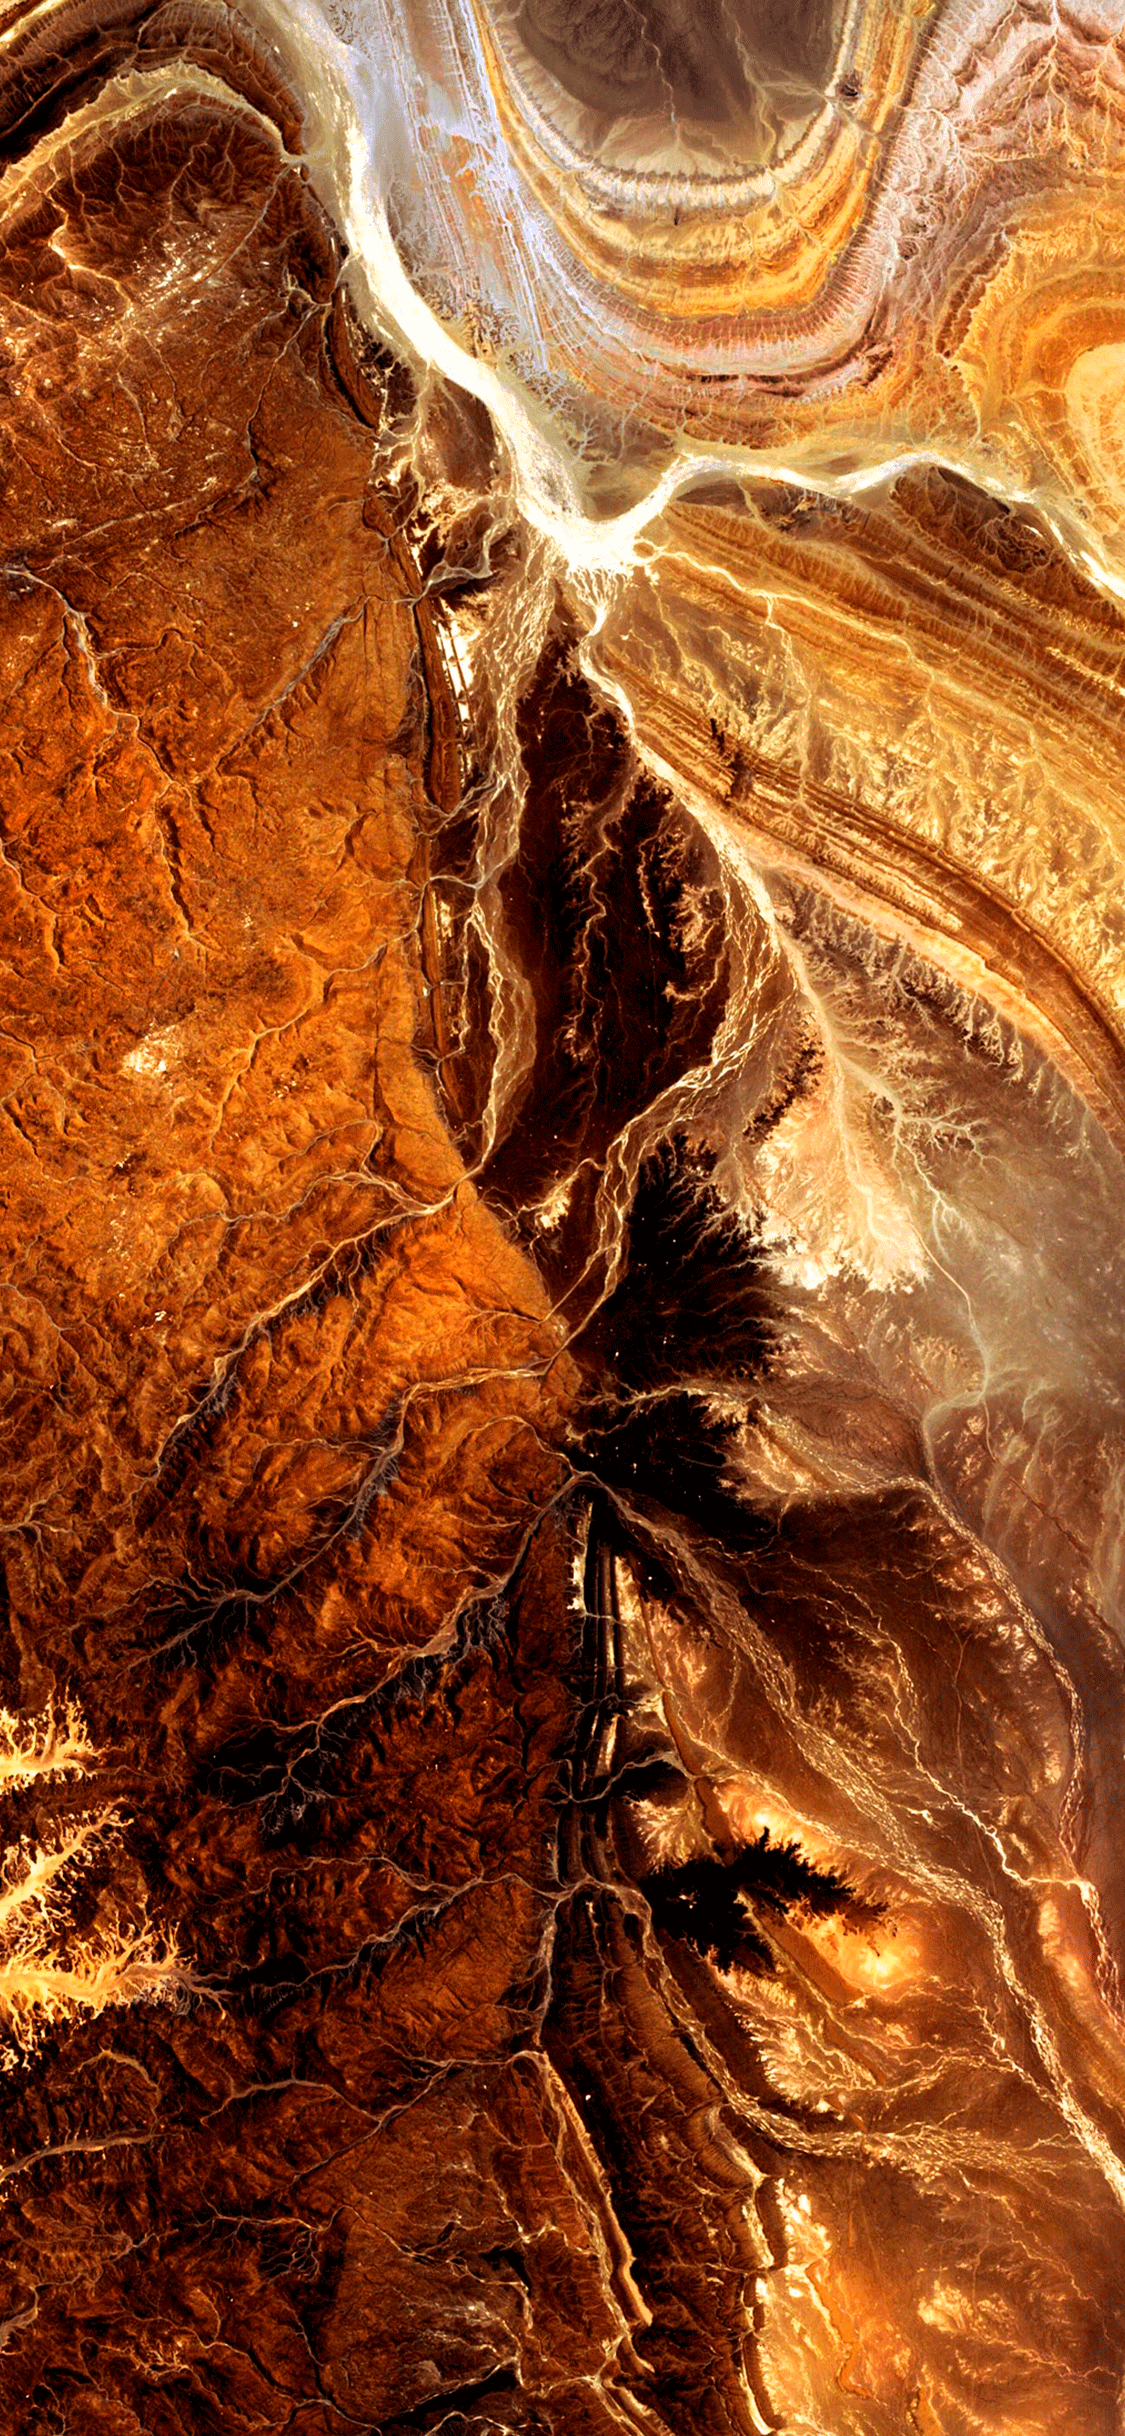 iPhone wallpaper satellite images algerian sahara Fonds d'écran iPhone du 11/07/2018